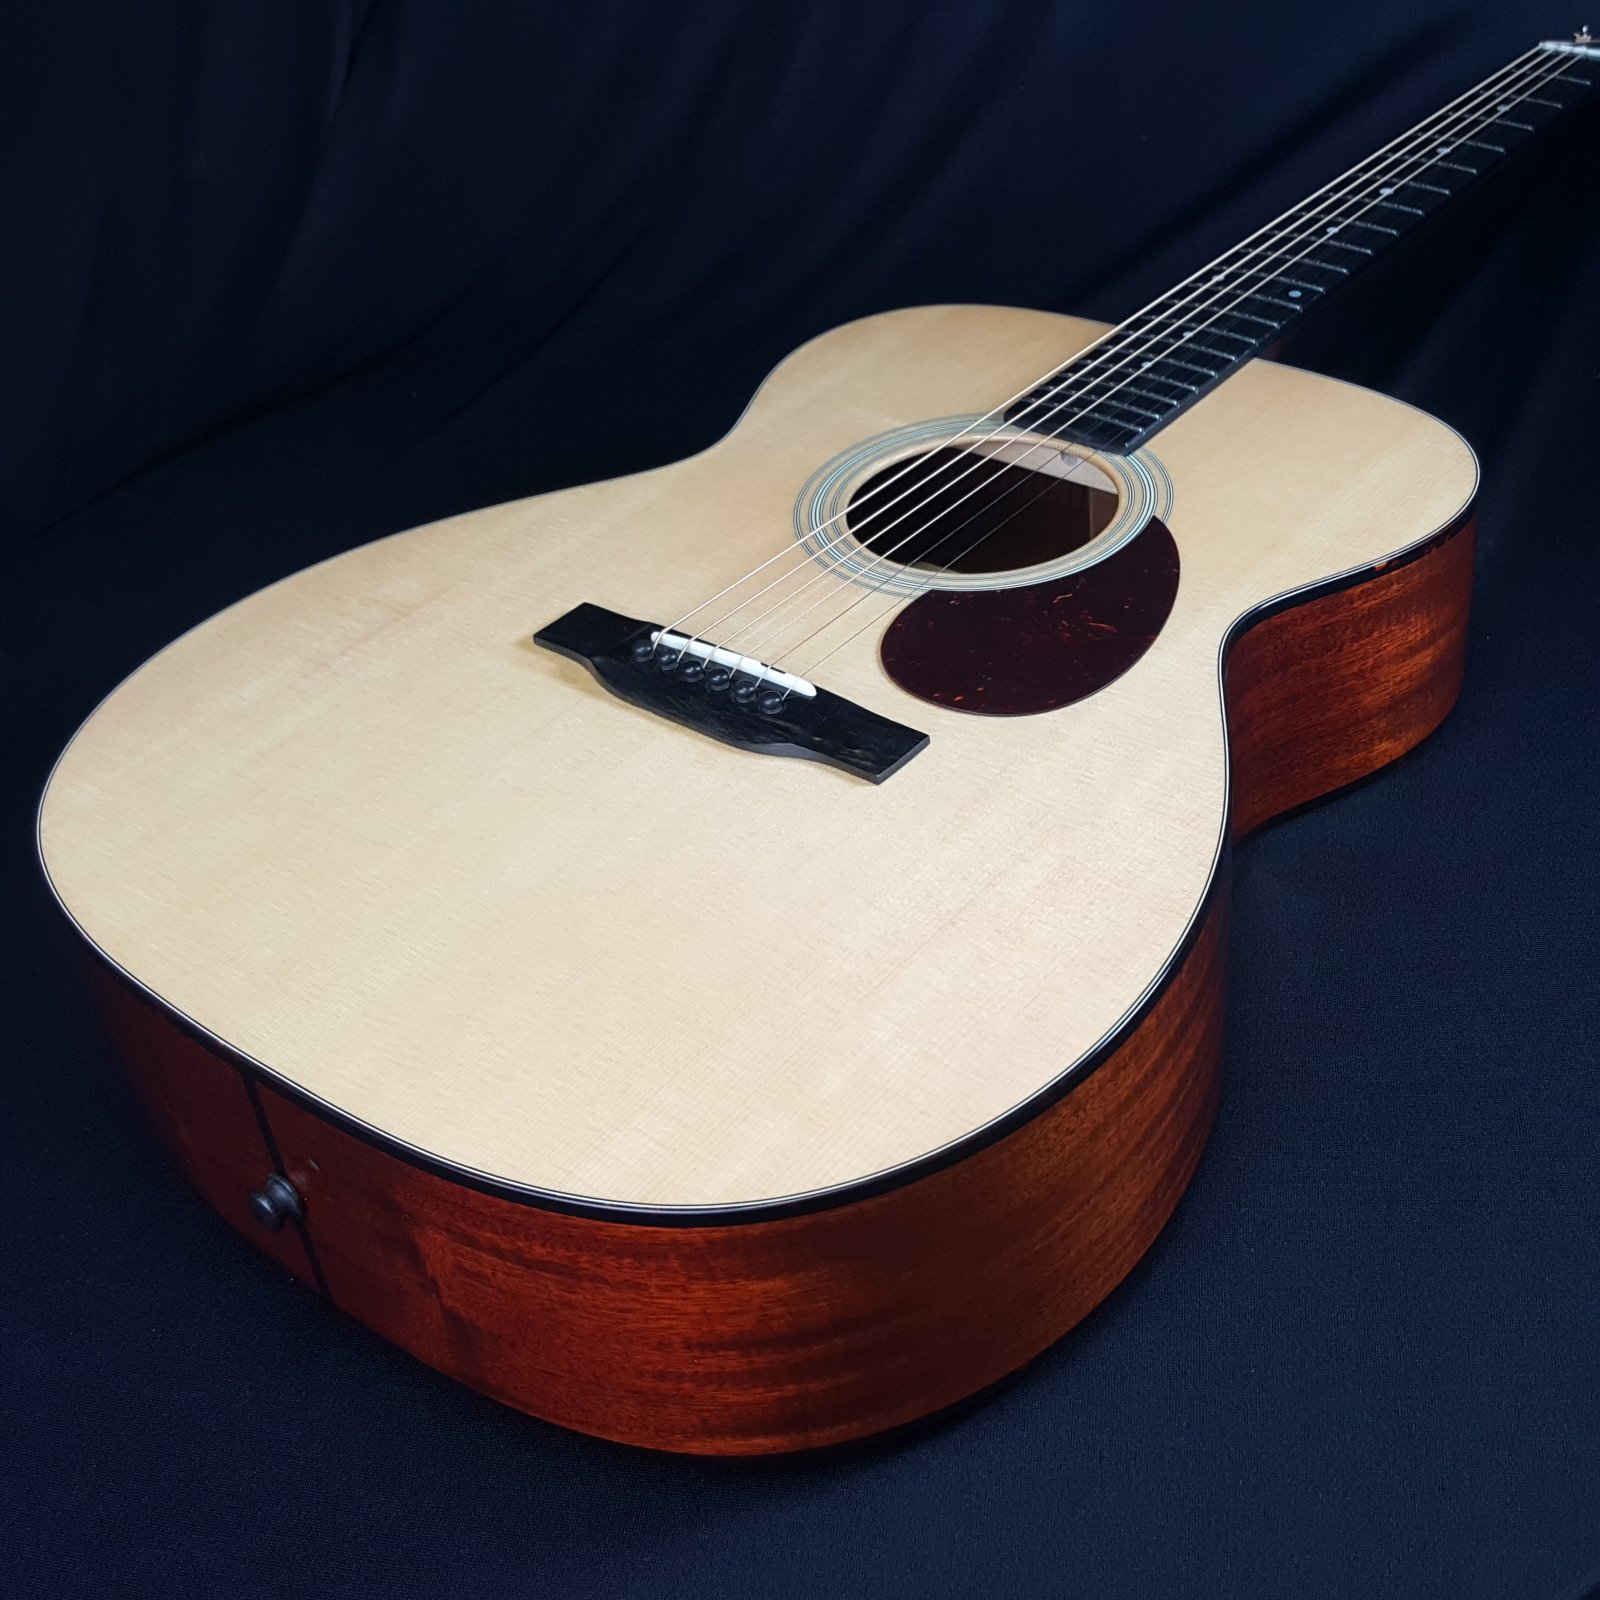 Eastman E6OM Acoustic Orchestra Guitar with Hard Shell Case